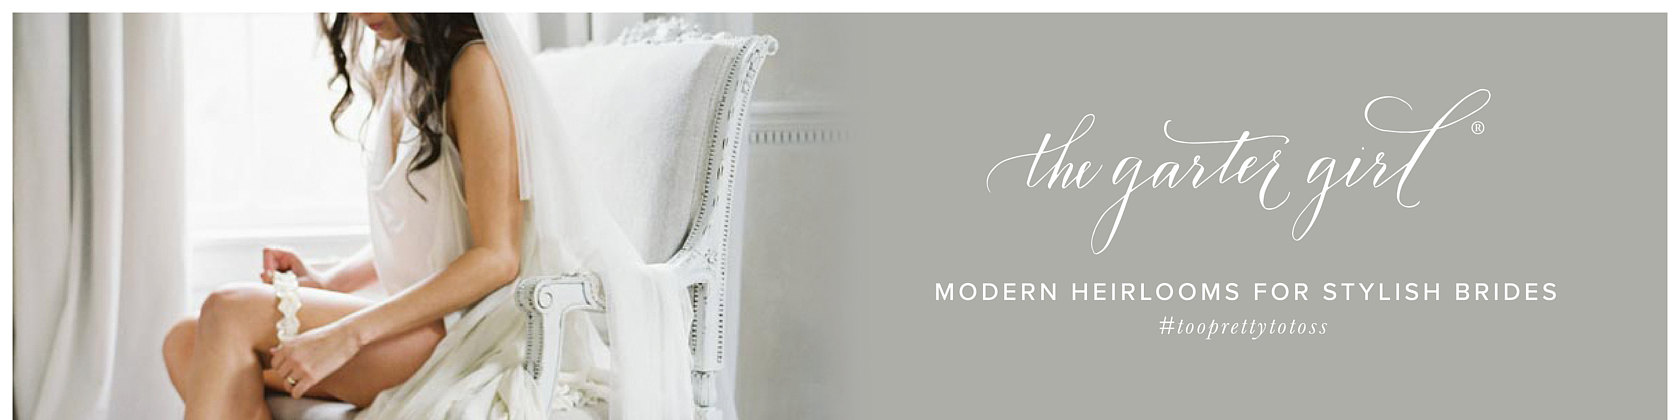 Shop for your Handmade Modern Heirlooms for Stylish Brides from The Garter Girl